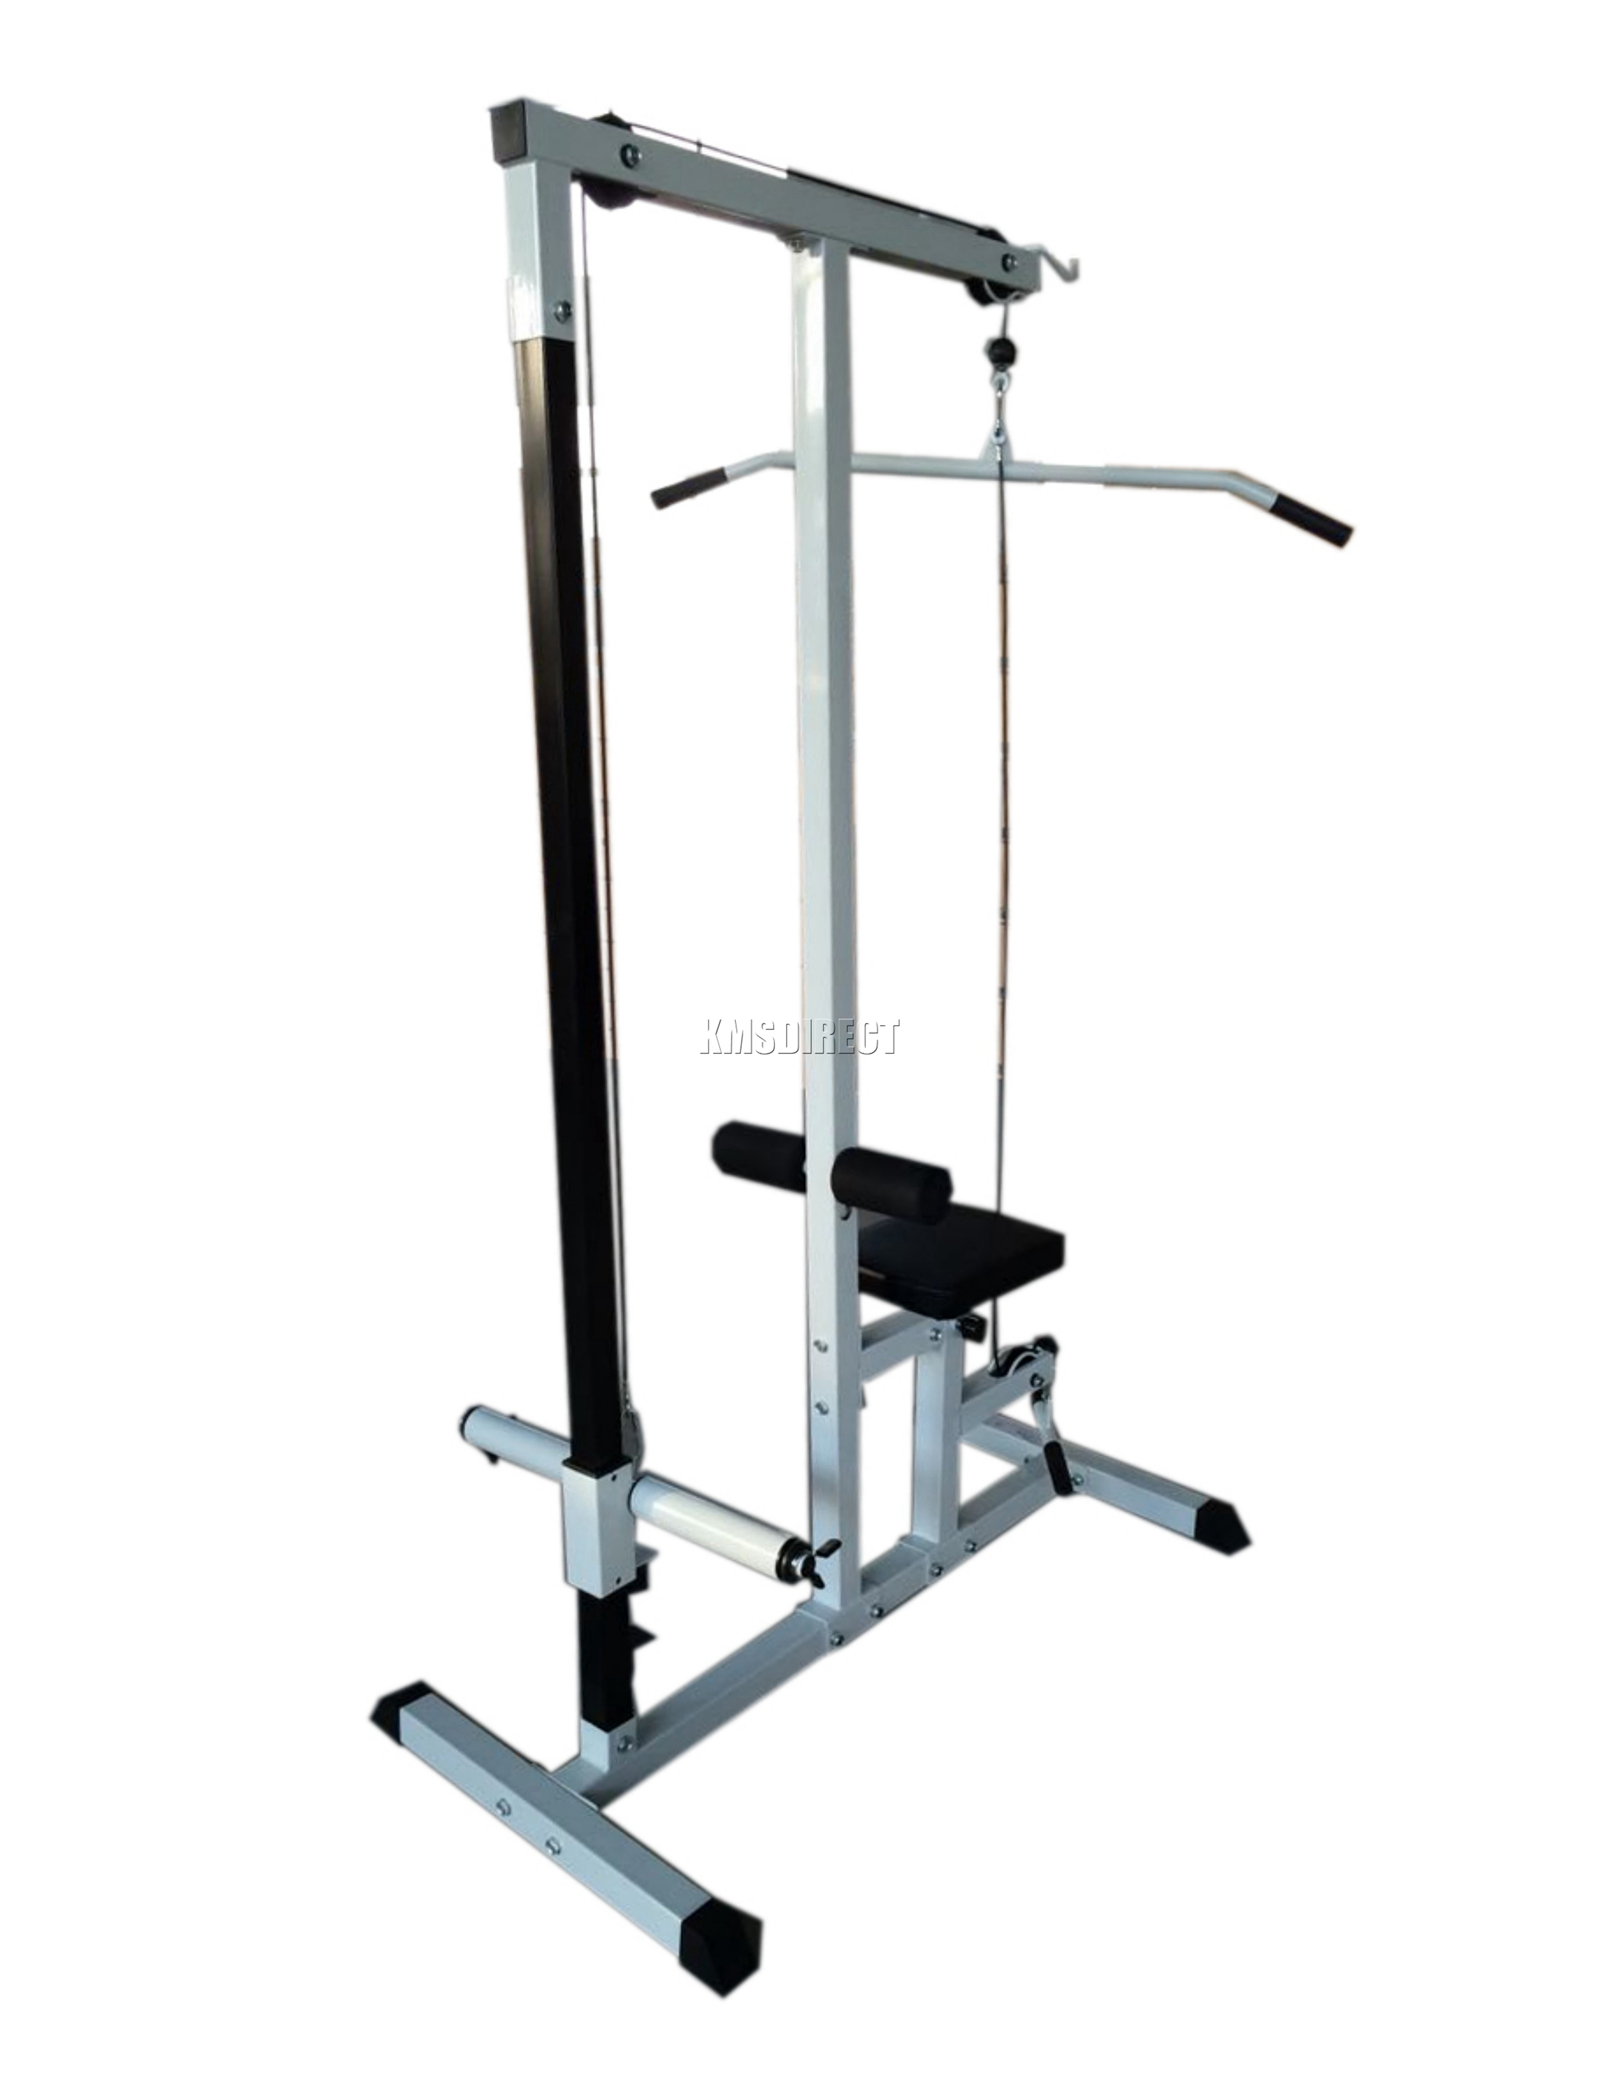 Workout Bench With Lat Pulldown 28 Images Multi Purpose Exercise Bench With Lat Pulldown Leg